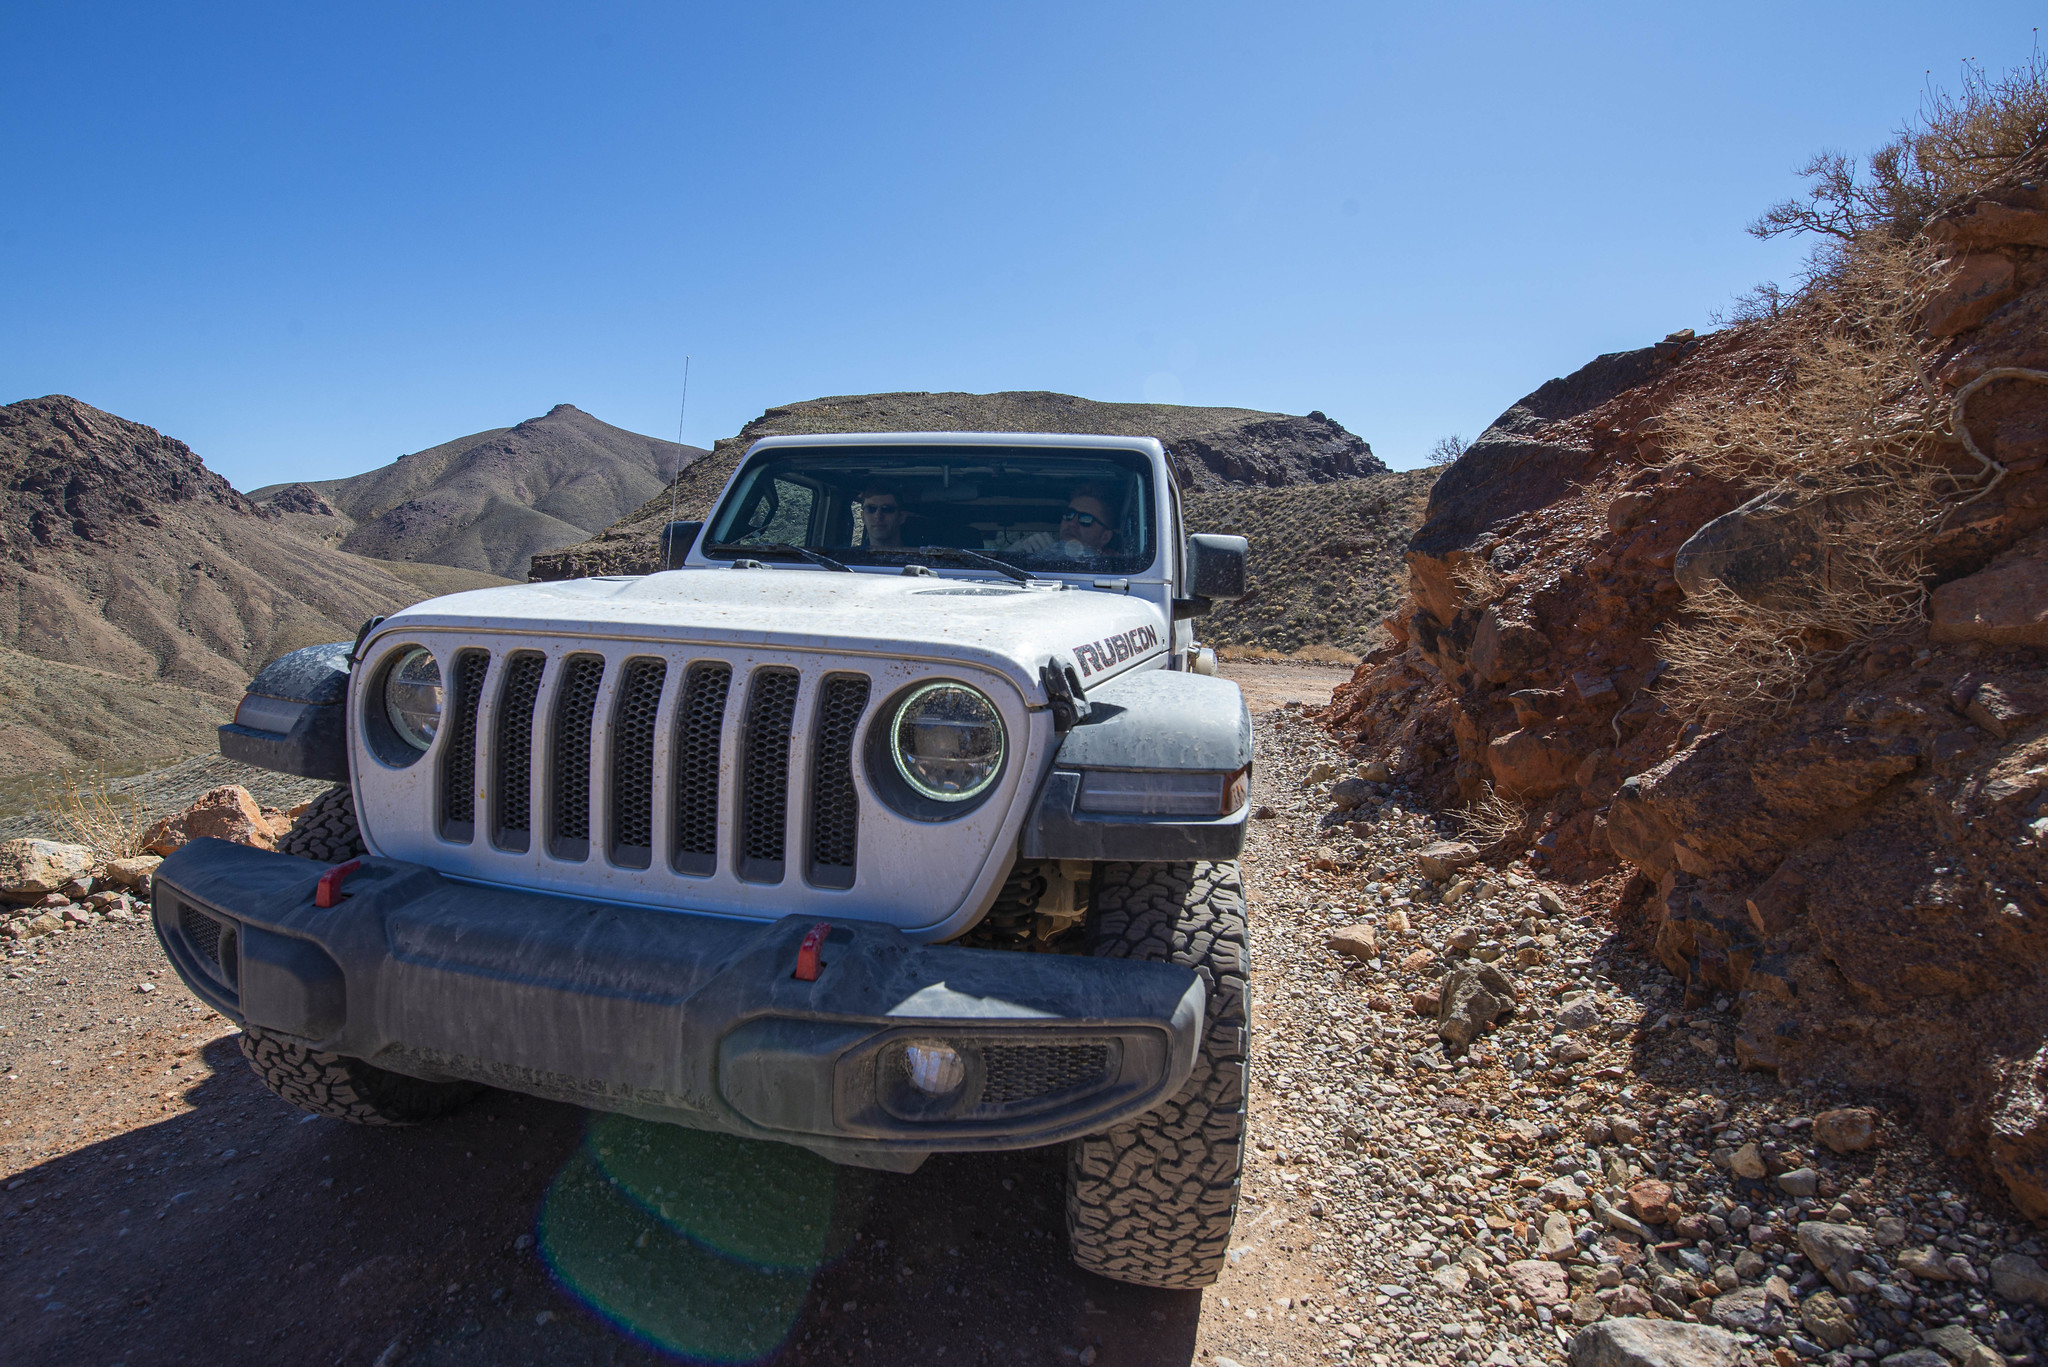 Death Valley - The Jeep Rubicon